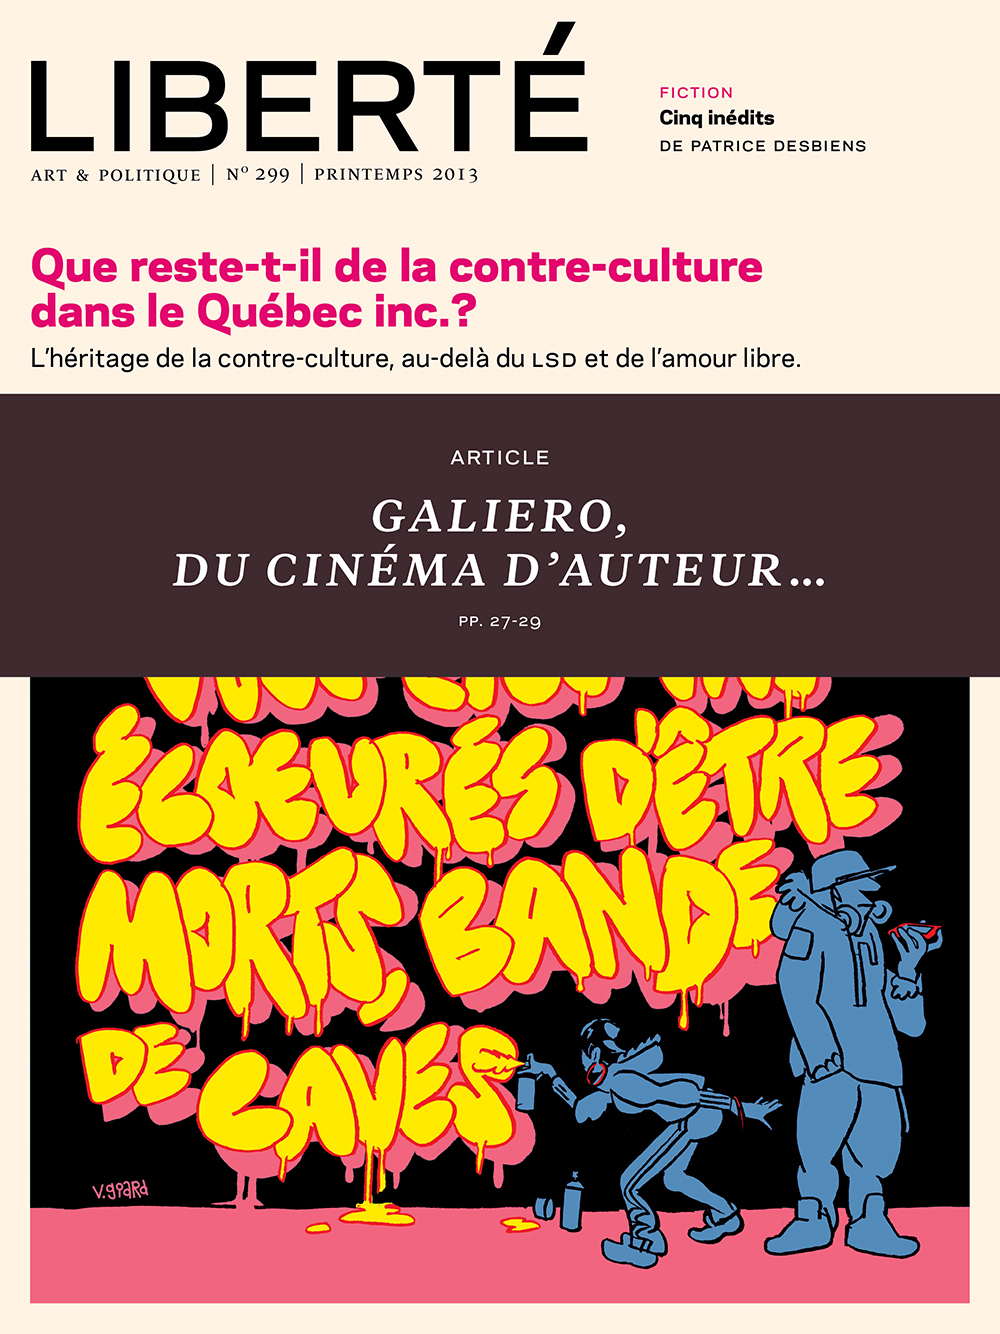 LIBERTE 299 - ARTICLE - DU CINEMA D